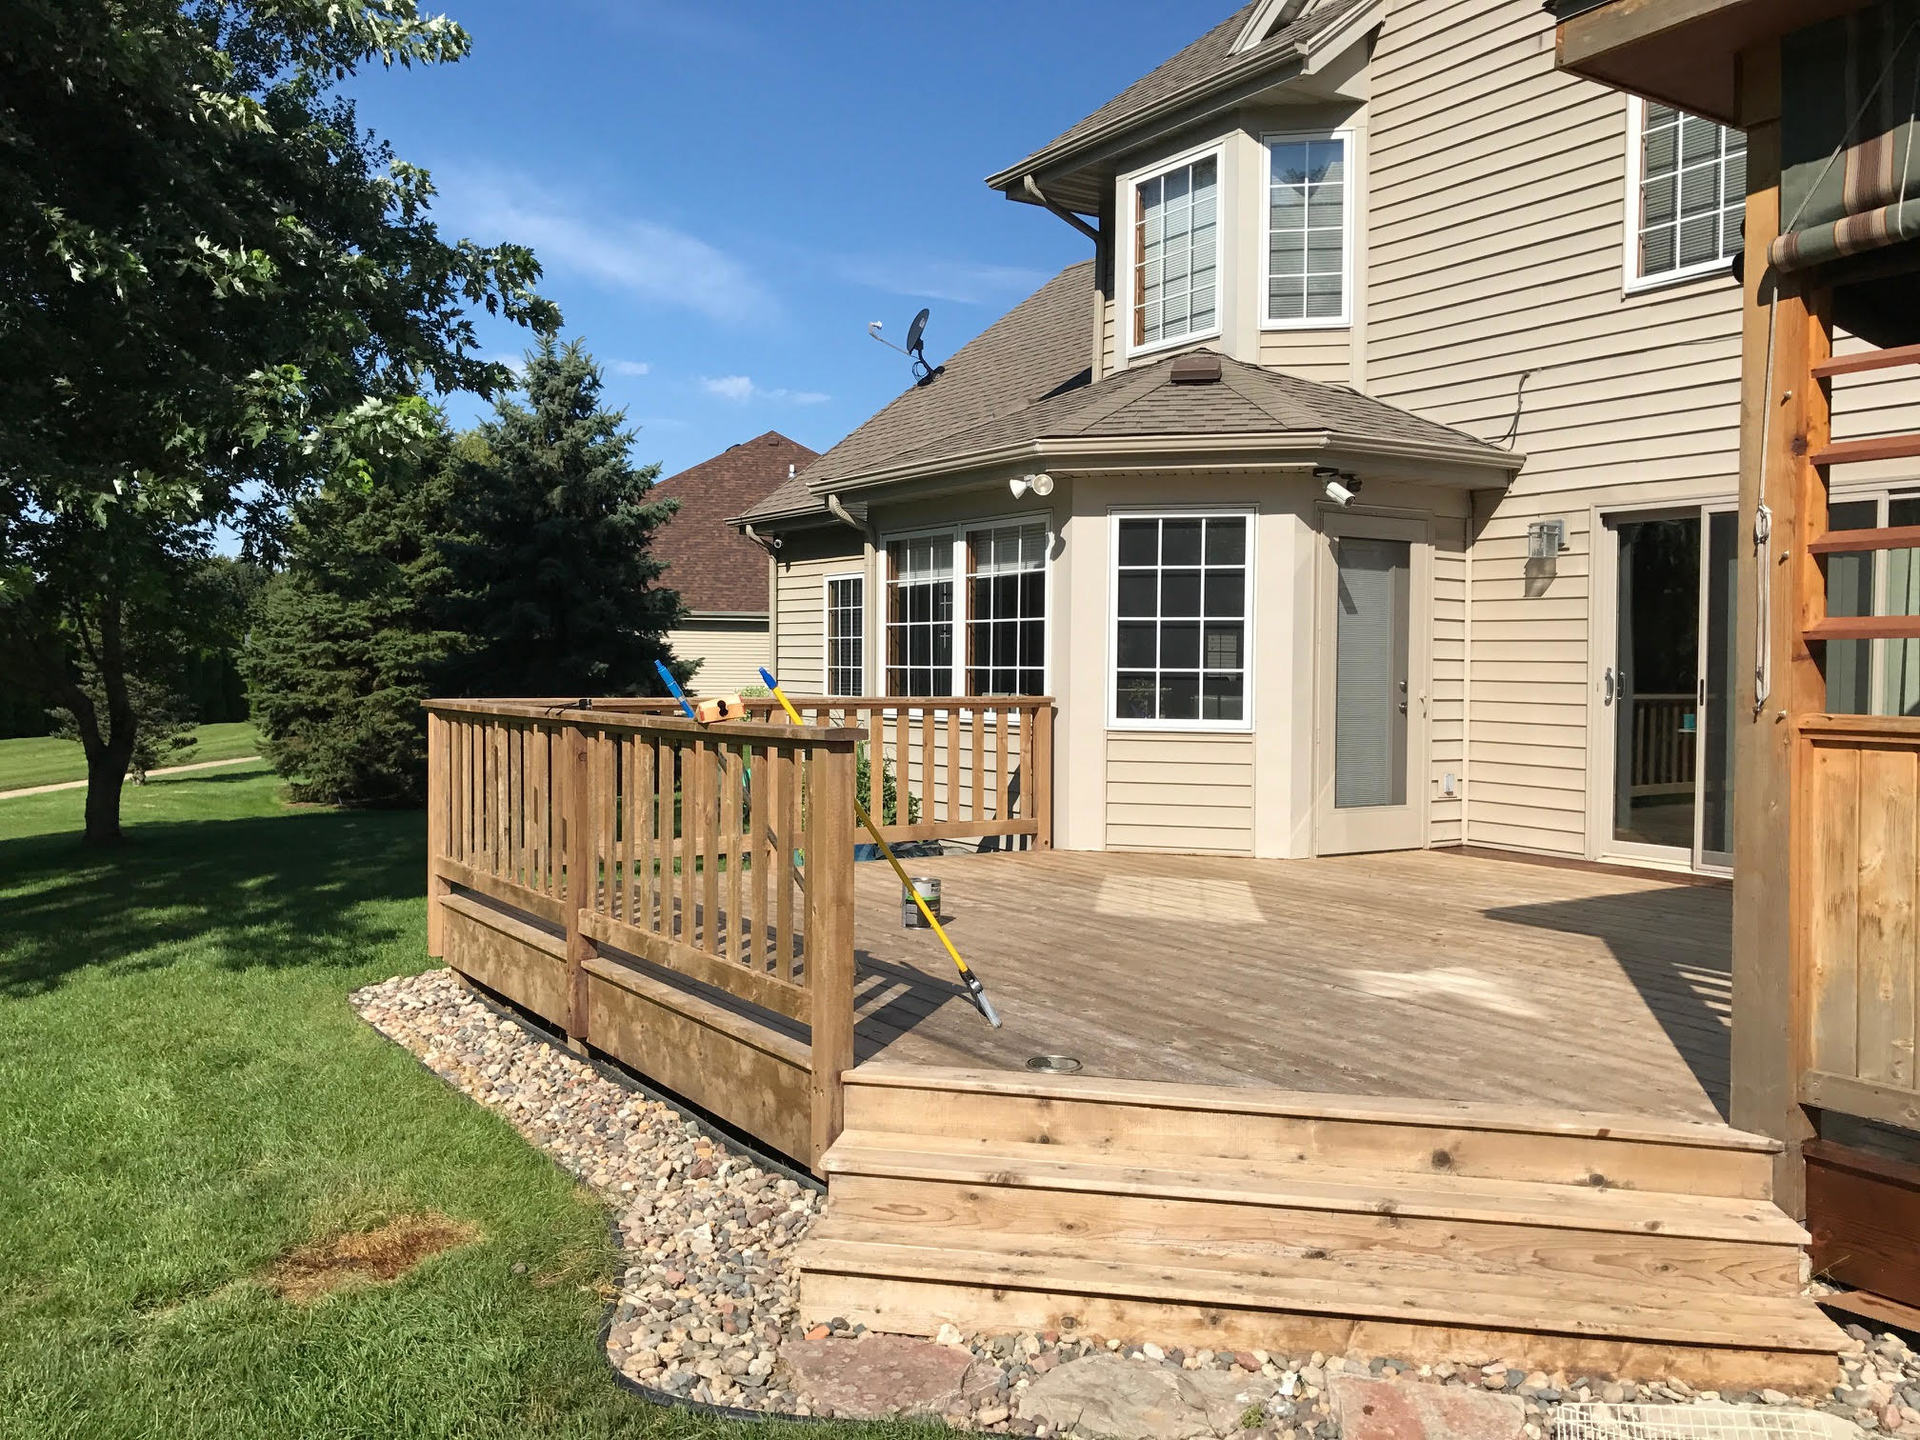 Finished Deck Refinishing Project In Rockford Il